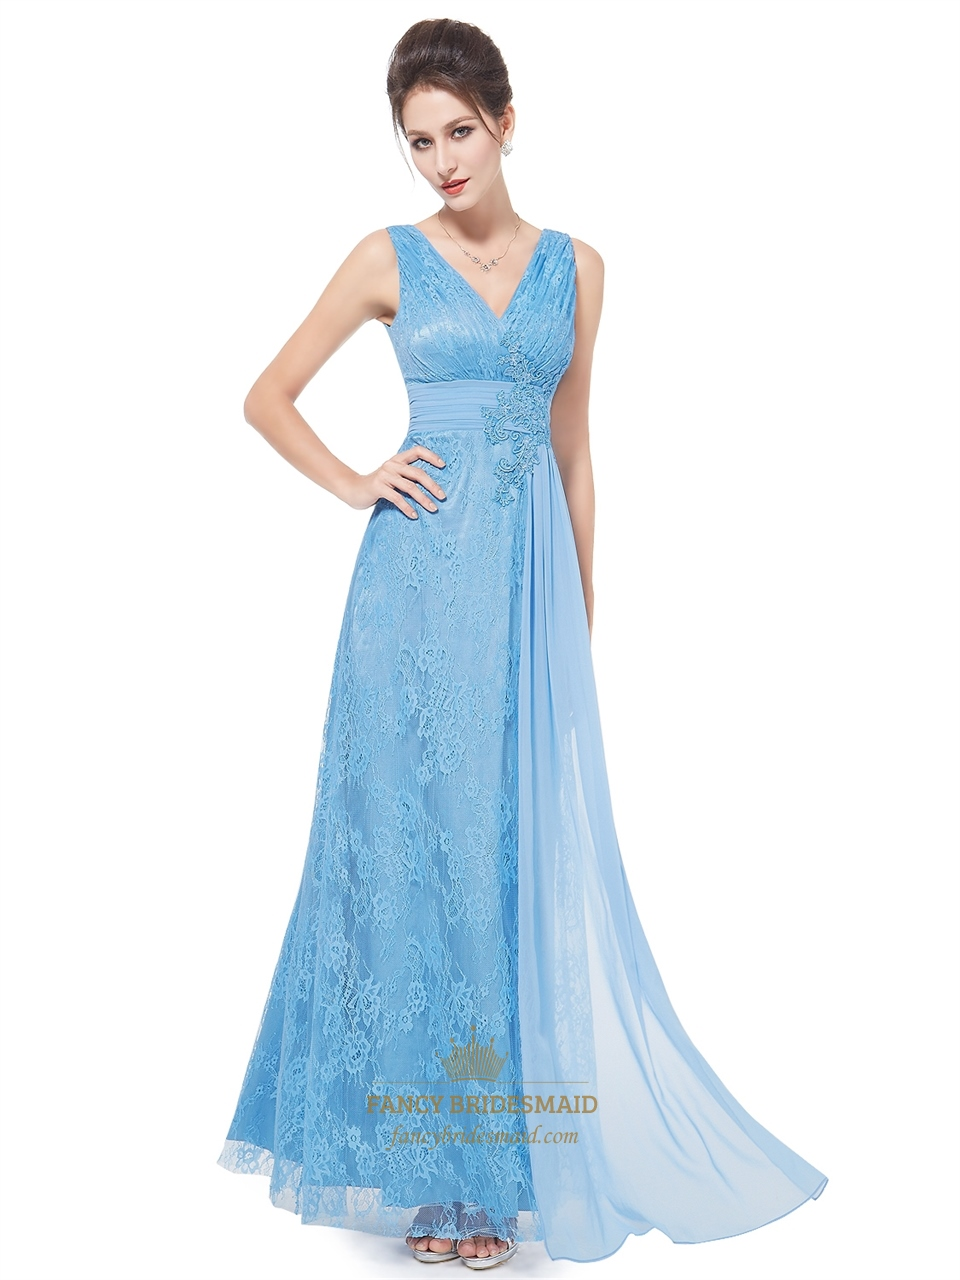 flowy light blue lace v neck full length prom dress with applique detail fancy bridesmaid dresses. Black Bedroom Furniture Sets. Home Design Ideas